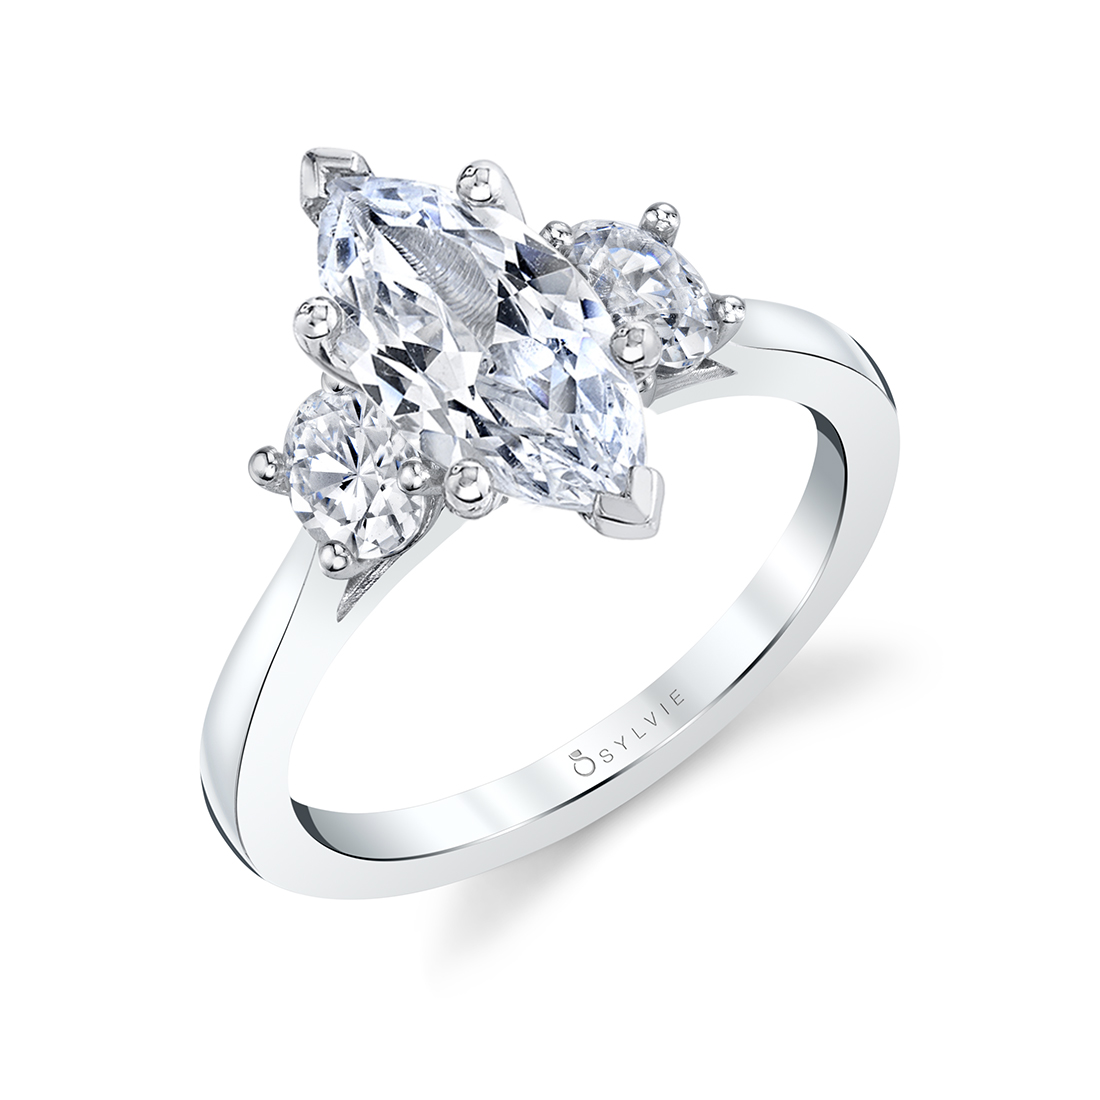 marquise engagement ring with oval side stones in white gold